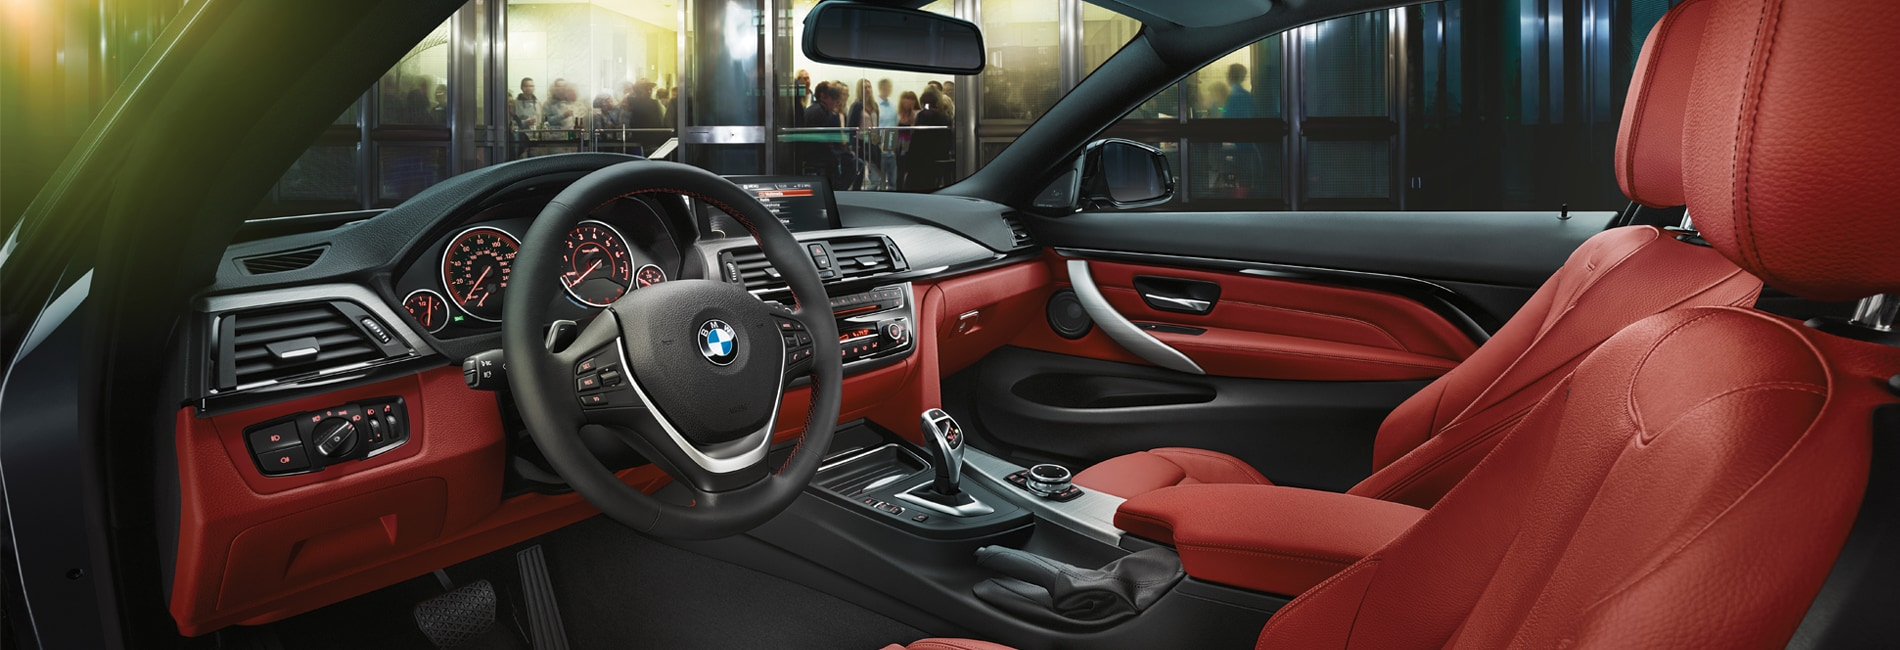 2019 BMW 4 Series Interior Features